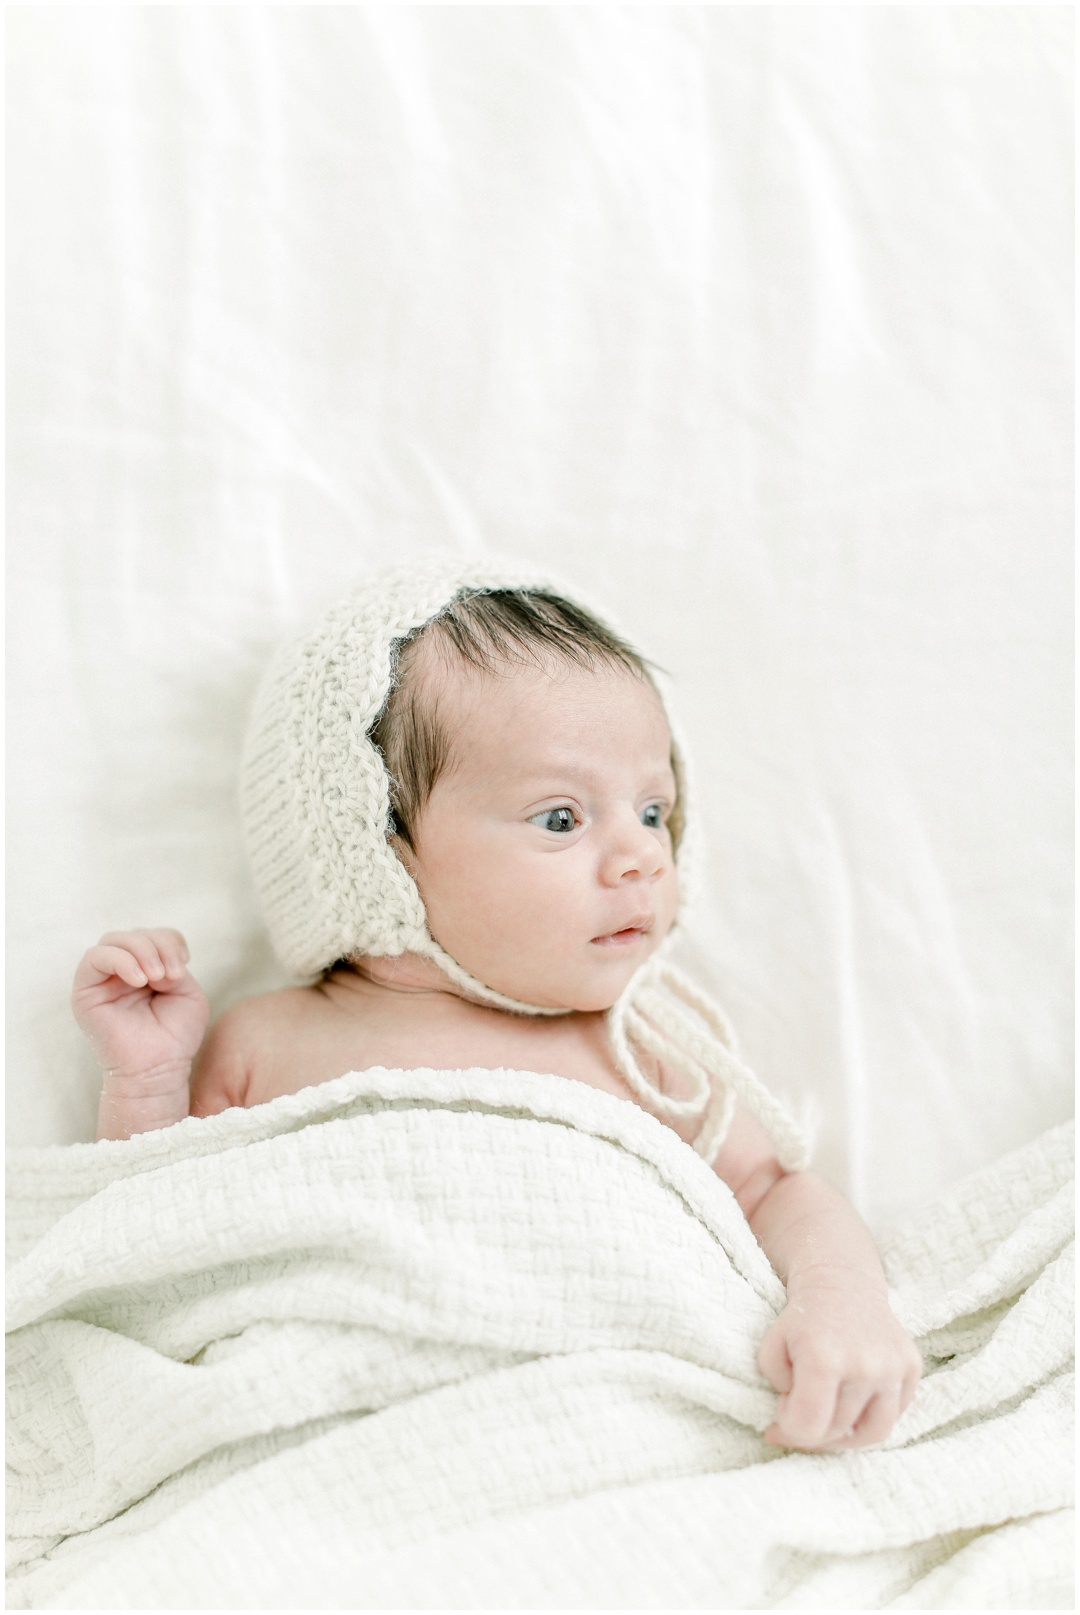 Newport_Beach_Newborn_Light_Airy_Natural_Photographer_Newport_Beach_In-Home_Photographer_Orange_County_Family_Photographer_Cori_Kleckner_Photography_Huntington_Beach_Photographer_Family_OC_Newborn_Blair_Sharpe_Ricky_Sharpe_Newborn_Family__3173.jpg